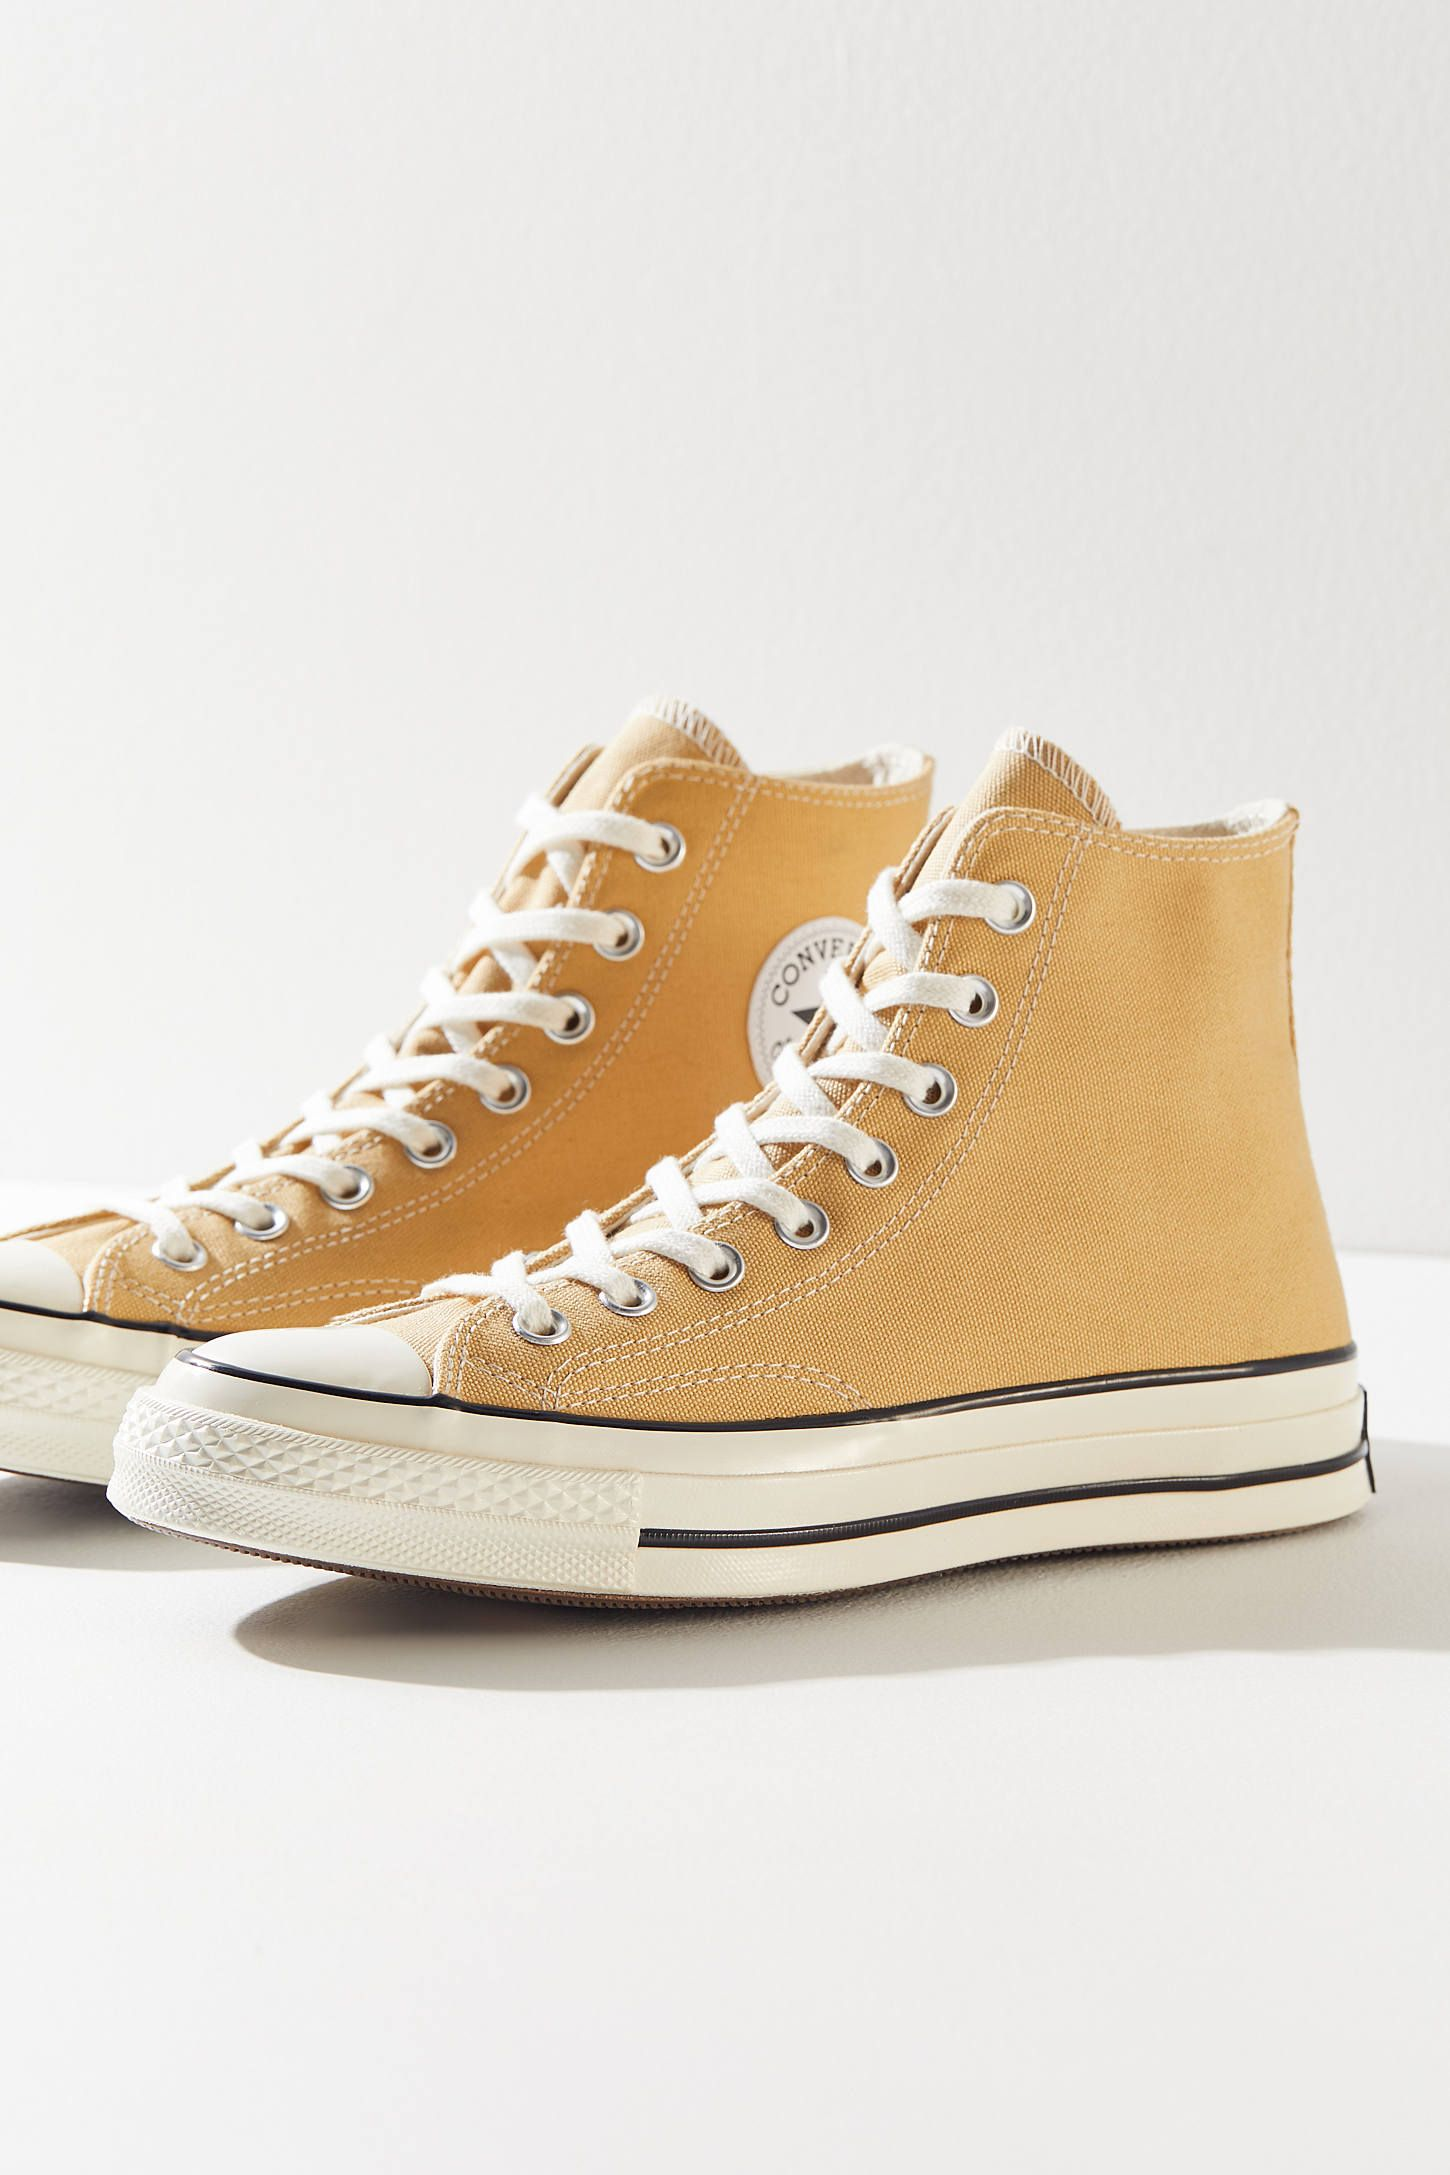 c2bc10797d02 Converse Chuck 70 Vintage Canvas High Top Sneaker in 2019